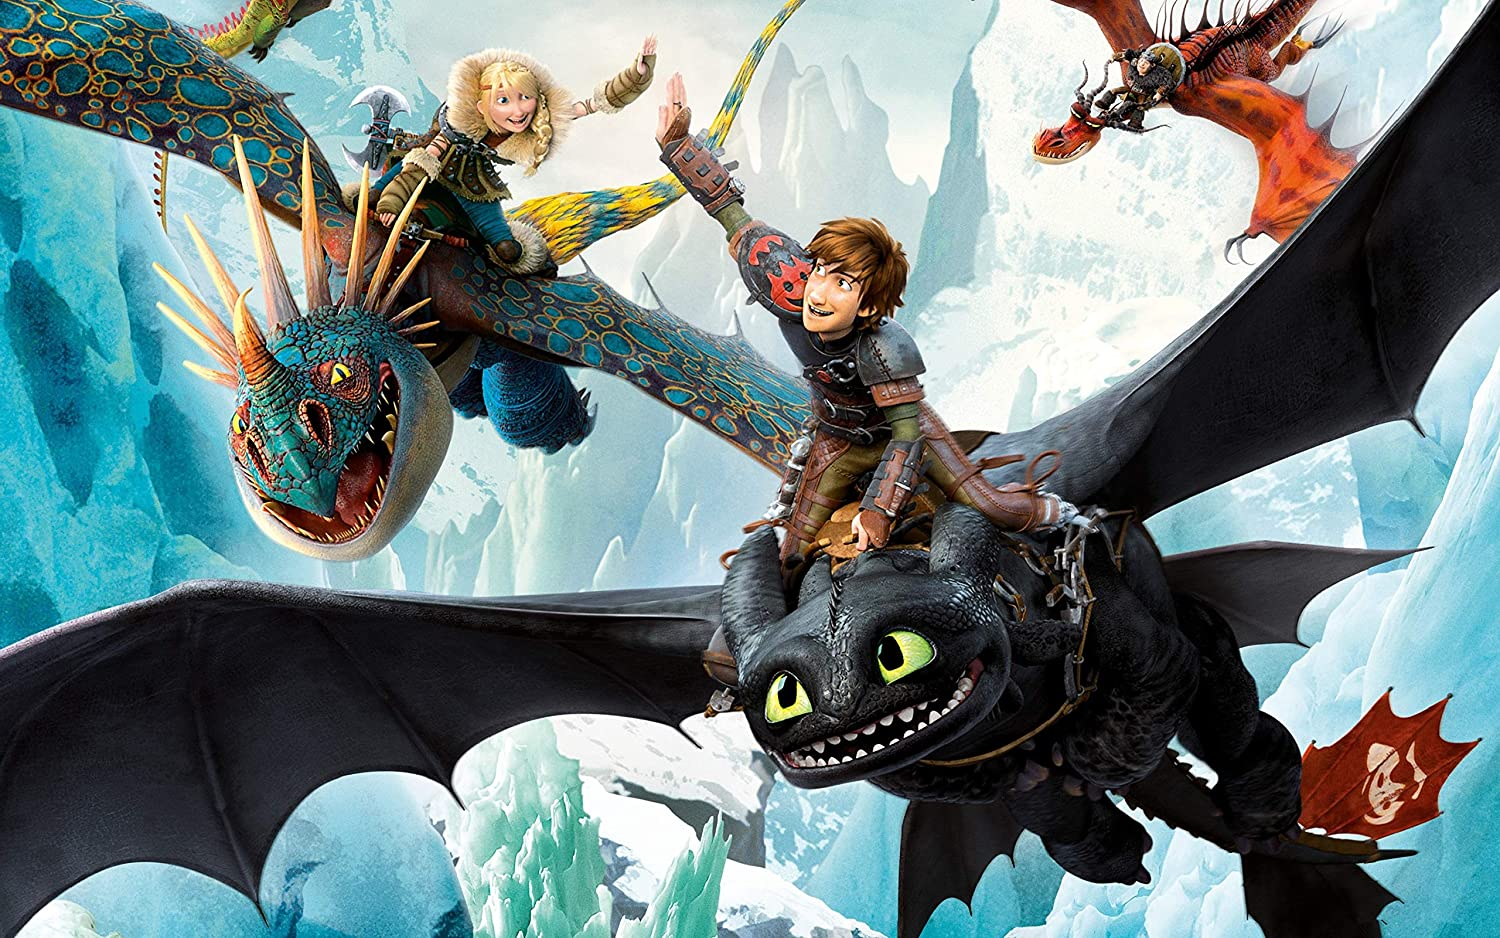 Wz1 Wooden Puzzle 1000 Pieces-How to Train Your Dragon-Children Adult Cartoon Anime Landscape Painting Decompression Educational Toy Gift Home Decoration